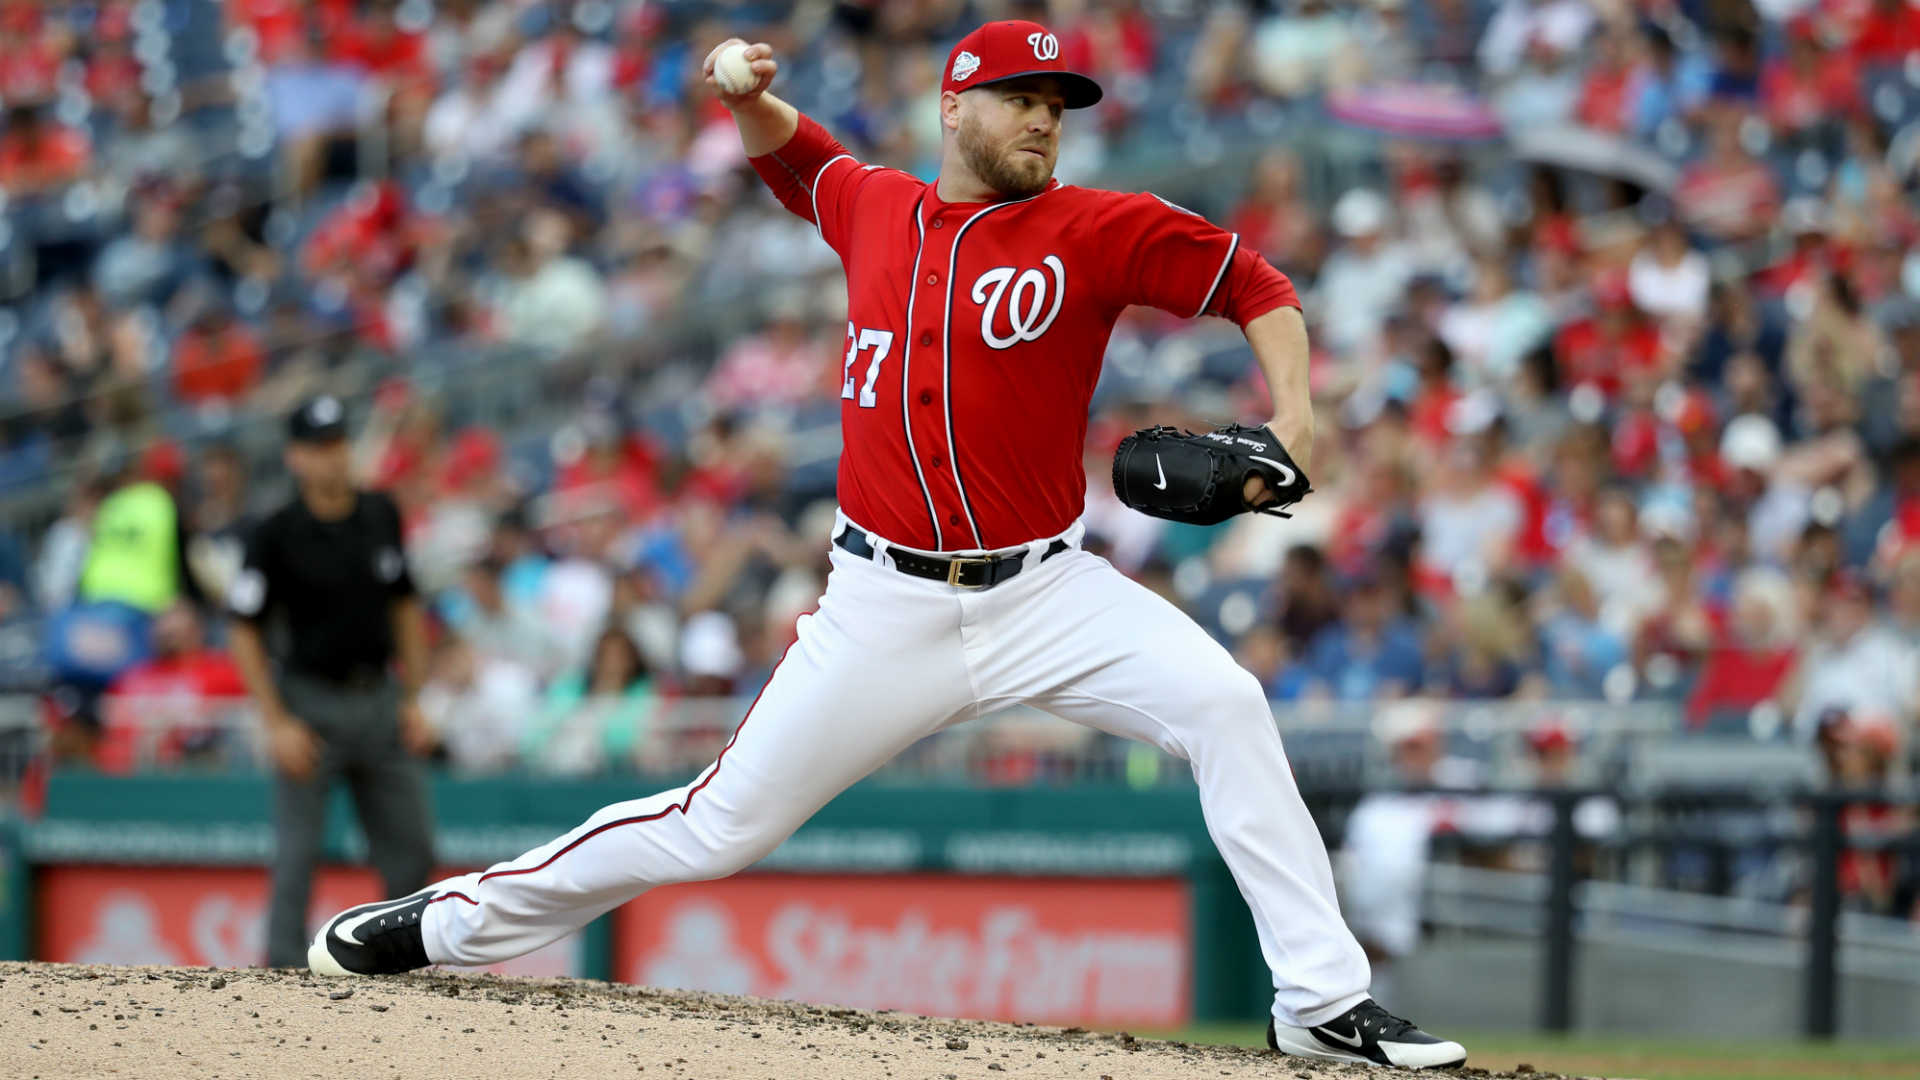 MLB trade rumors: Nationals sending reliever Shawn Kelley to Athletics